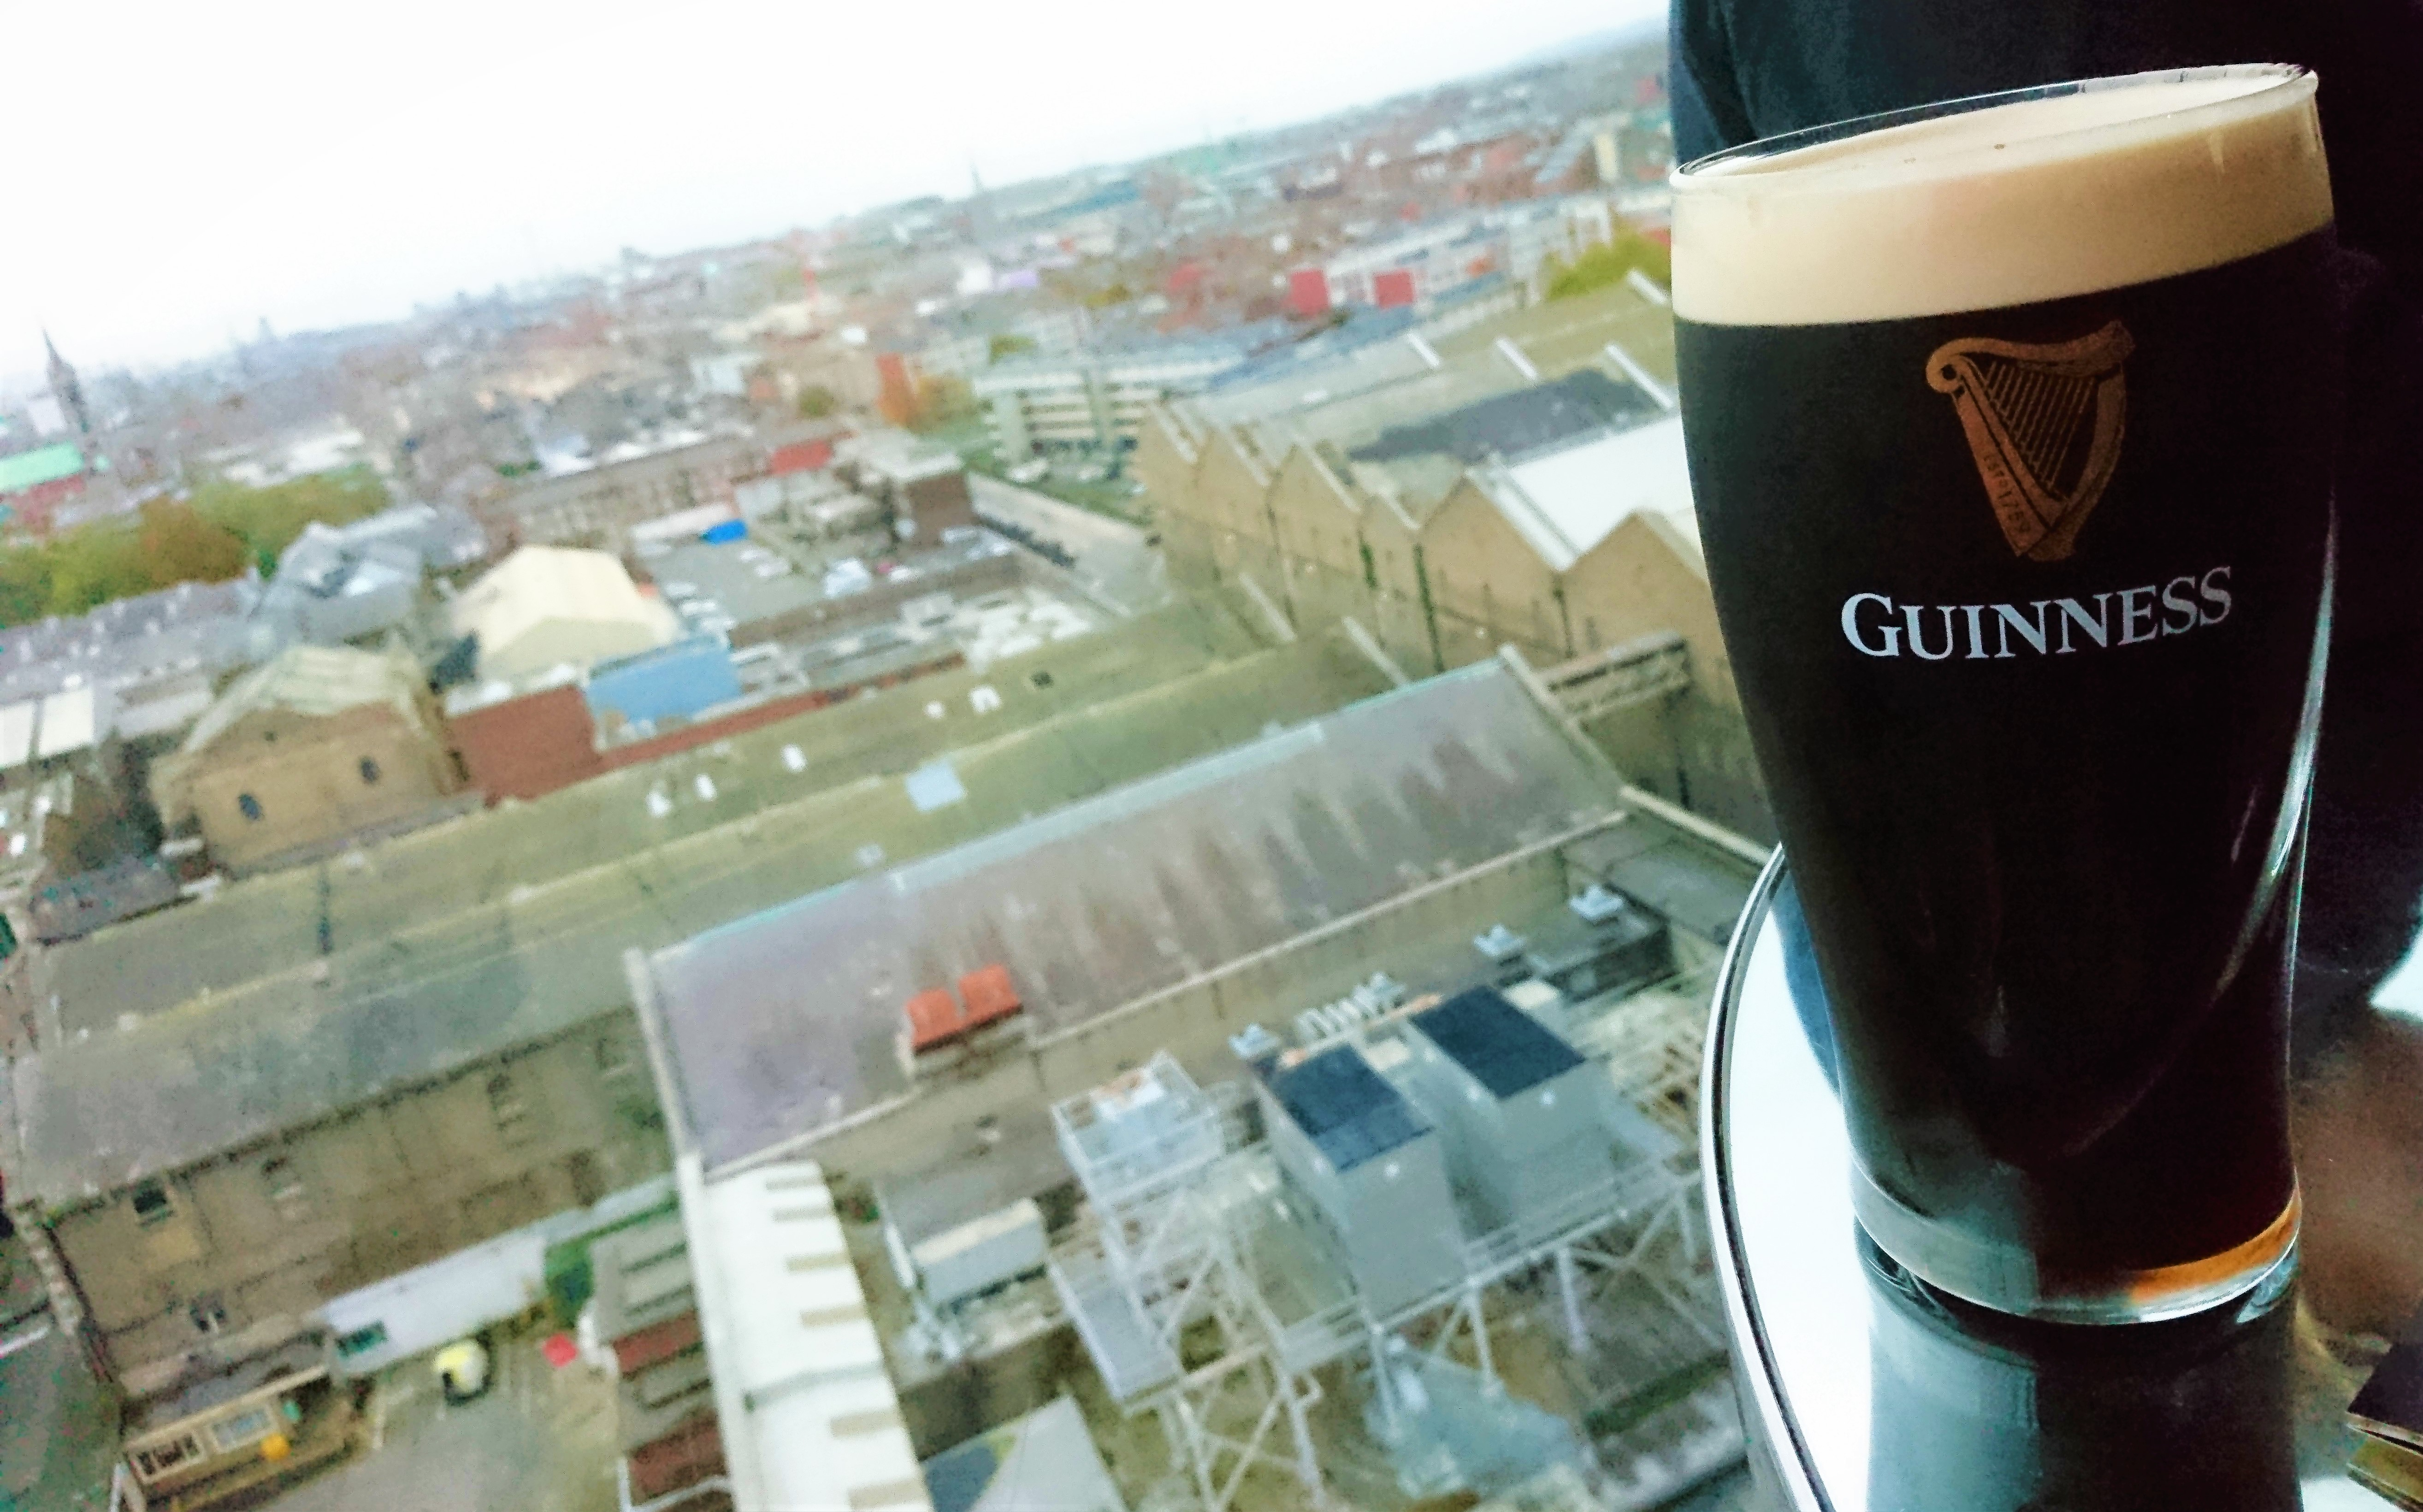 Guinness © iXtenso/Wintrich